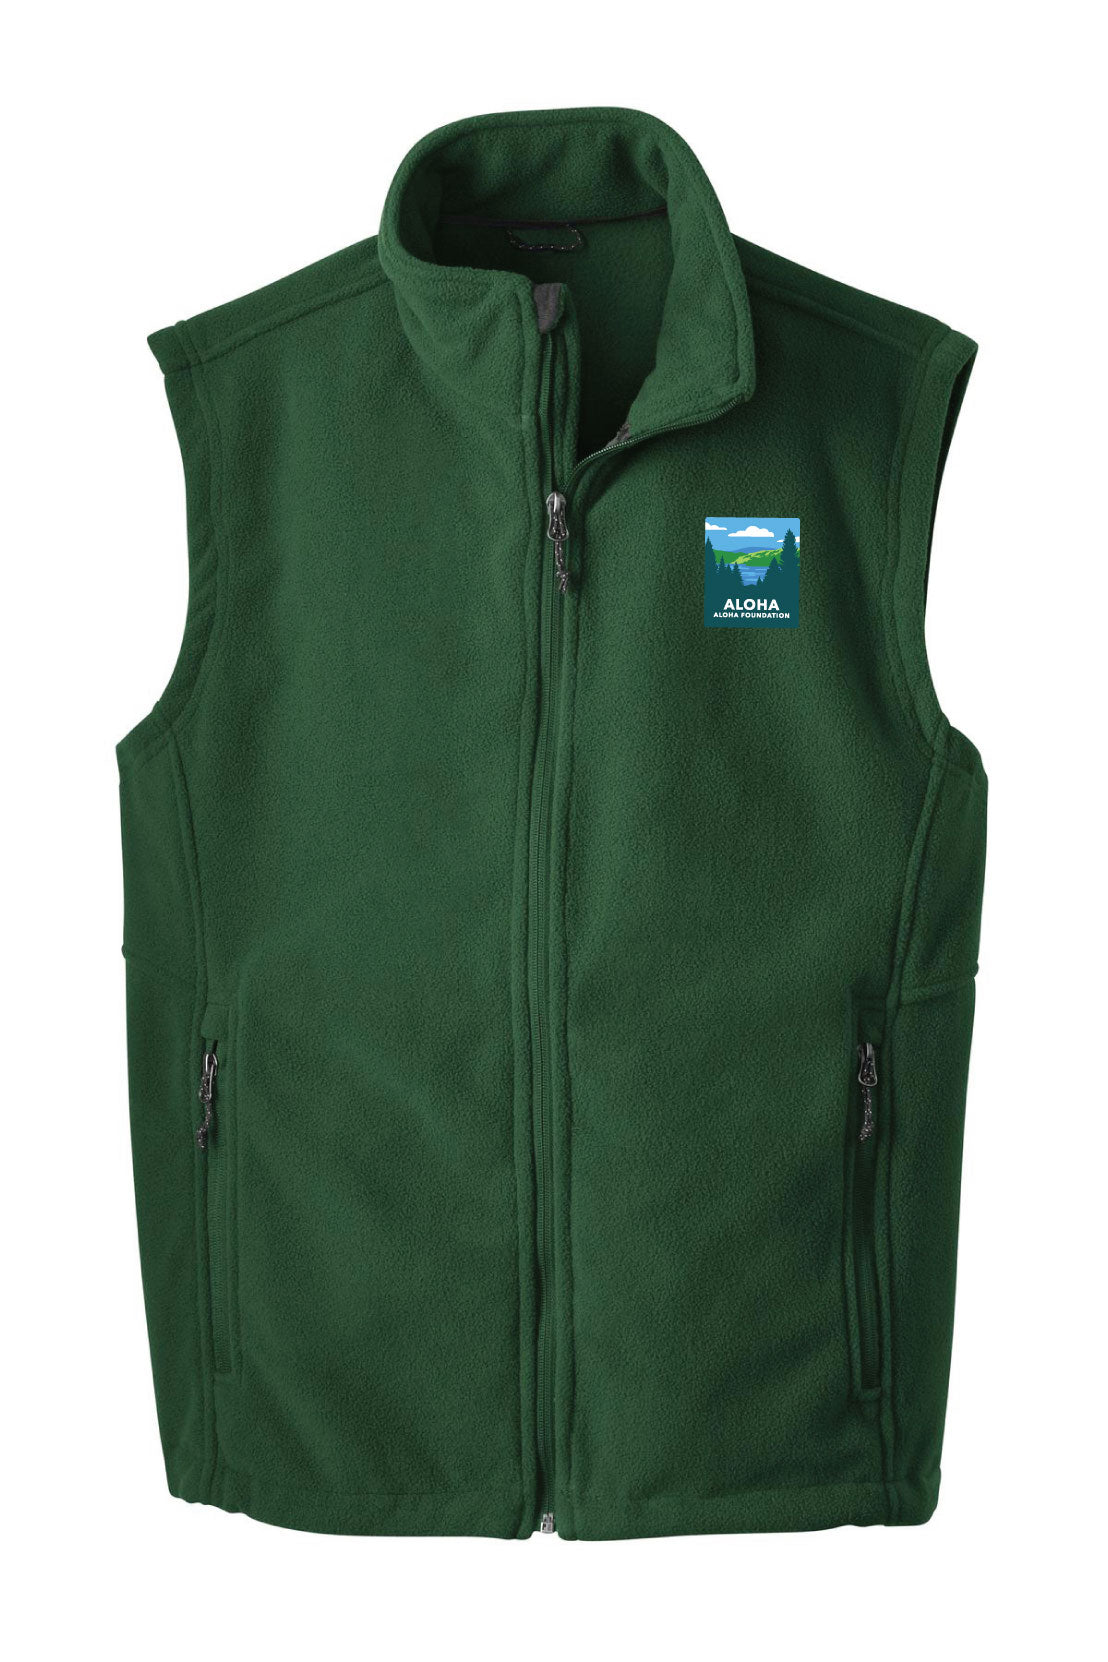 Aloha Camp Fleece Vest